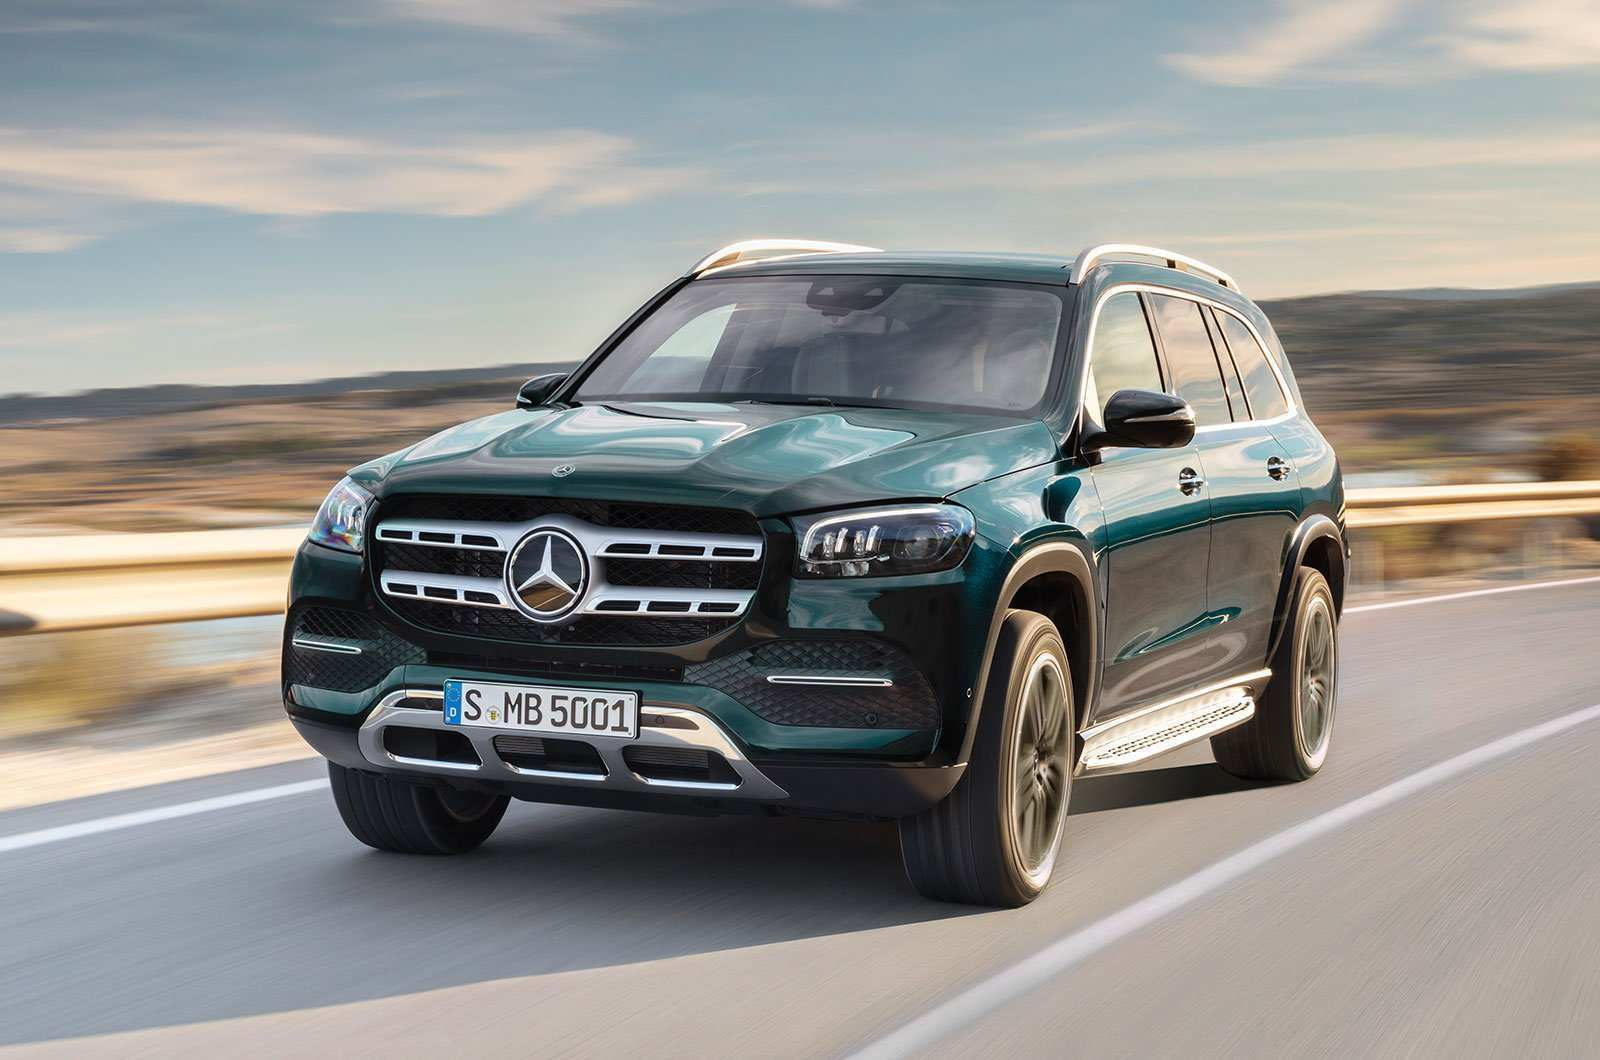 91 All New New Mercedes Hybrid Cars 2019 Price And Release Date Style with New Mercedes Hybrid Cars 2019 Price And Release Date